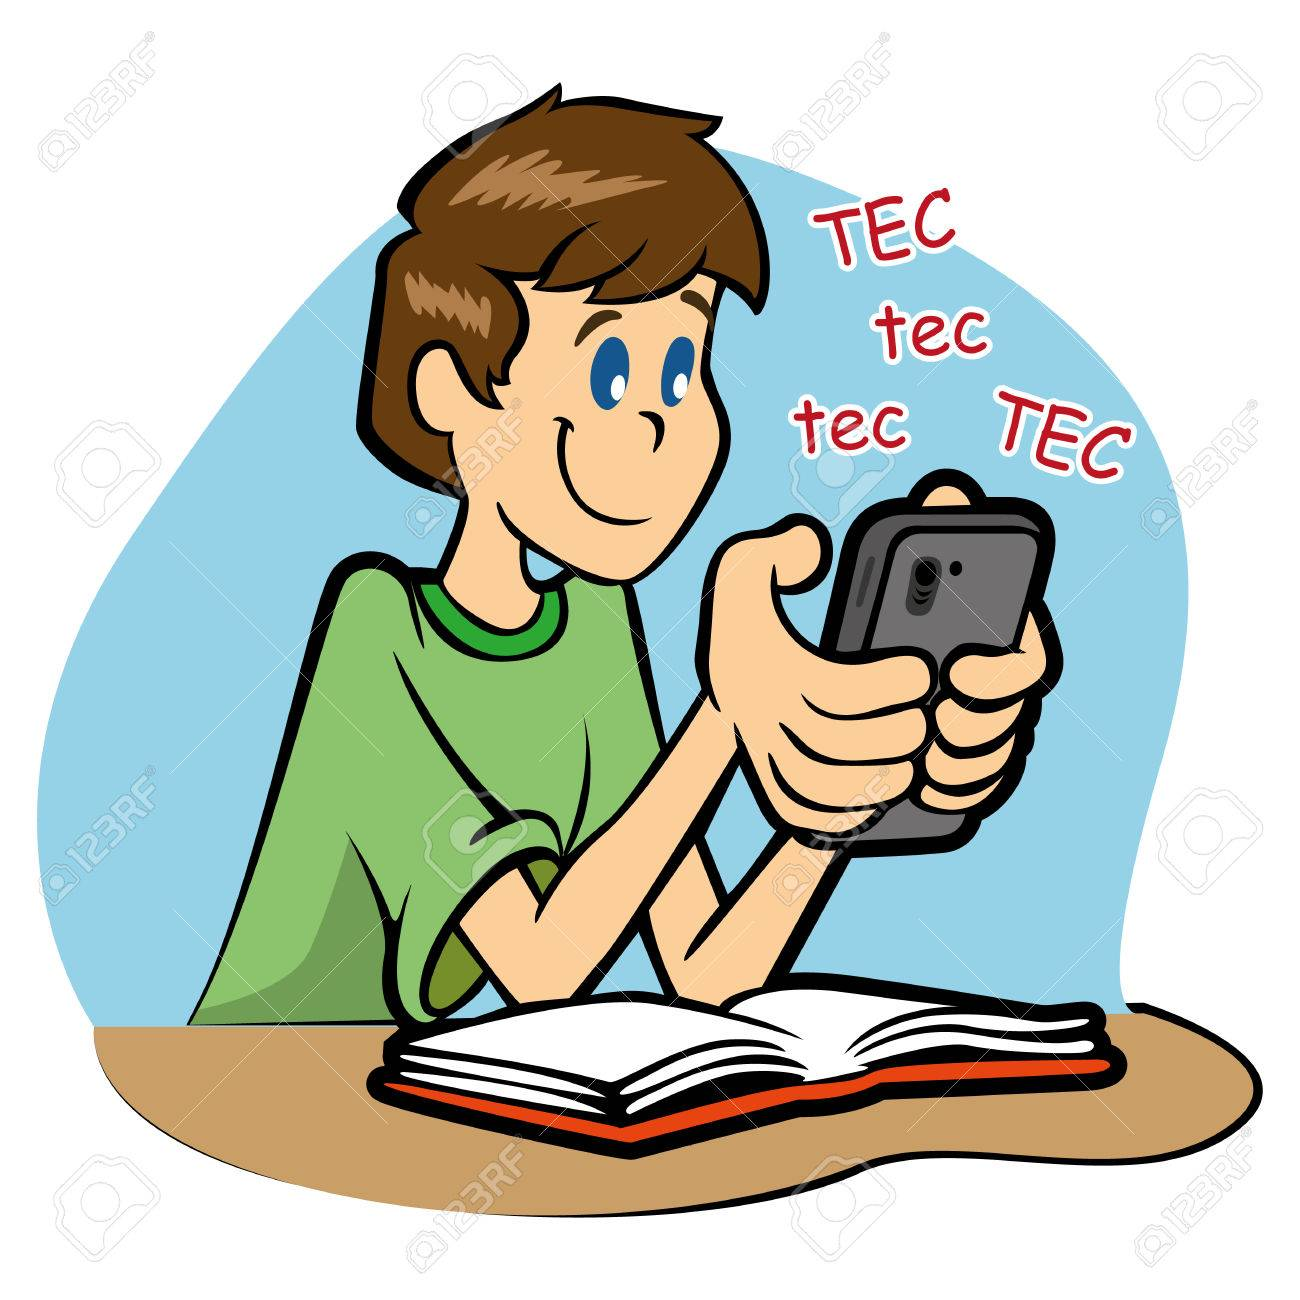 Student Using Phone Clipart & Free Clip Art Images #28240.